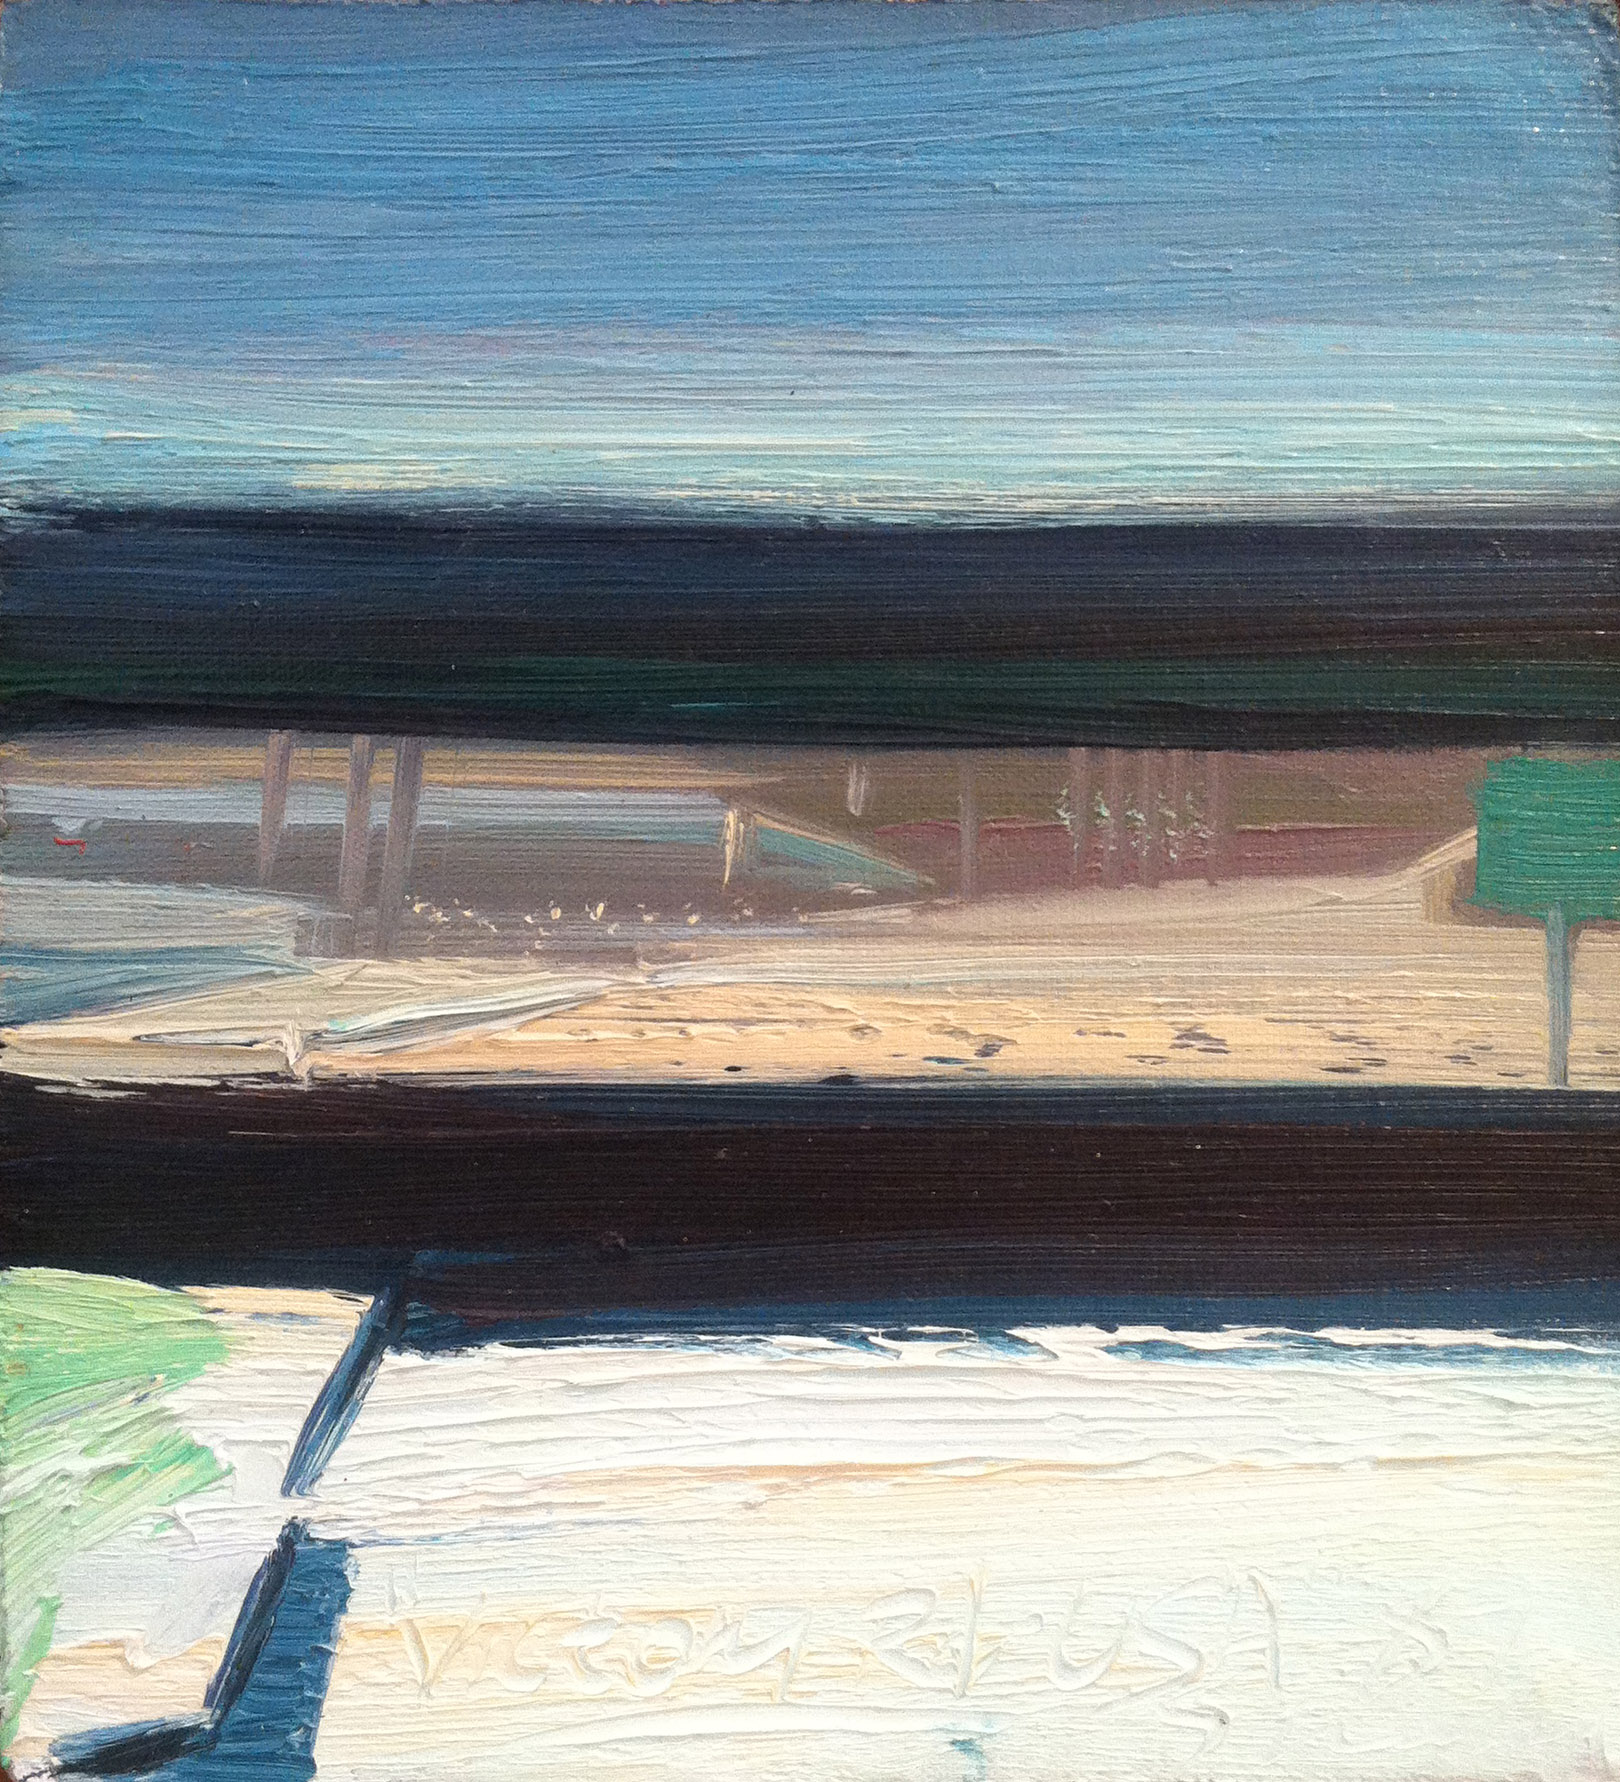 Victory Road, USA,  1987 oul on canvas, 10 x 9 inches